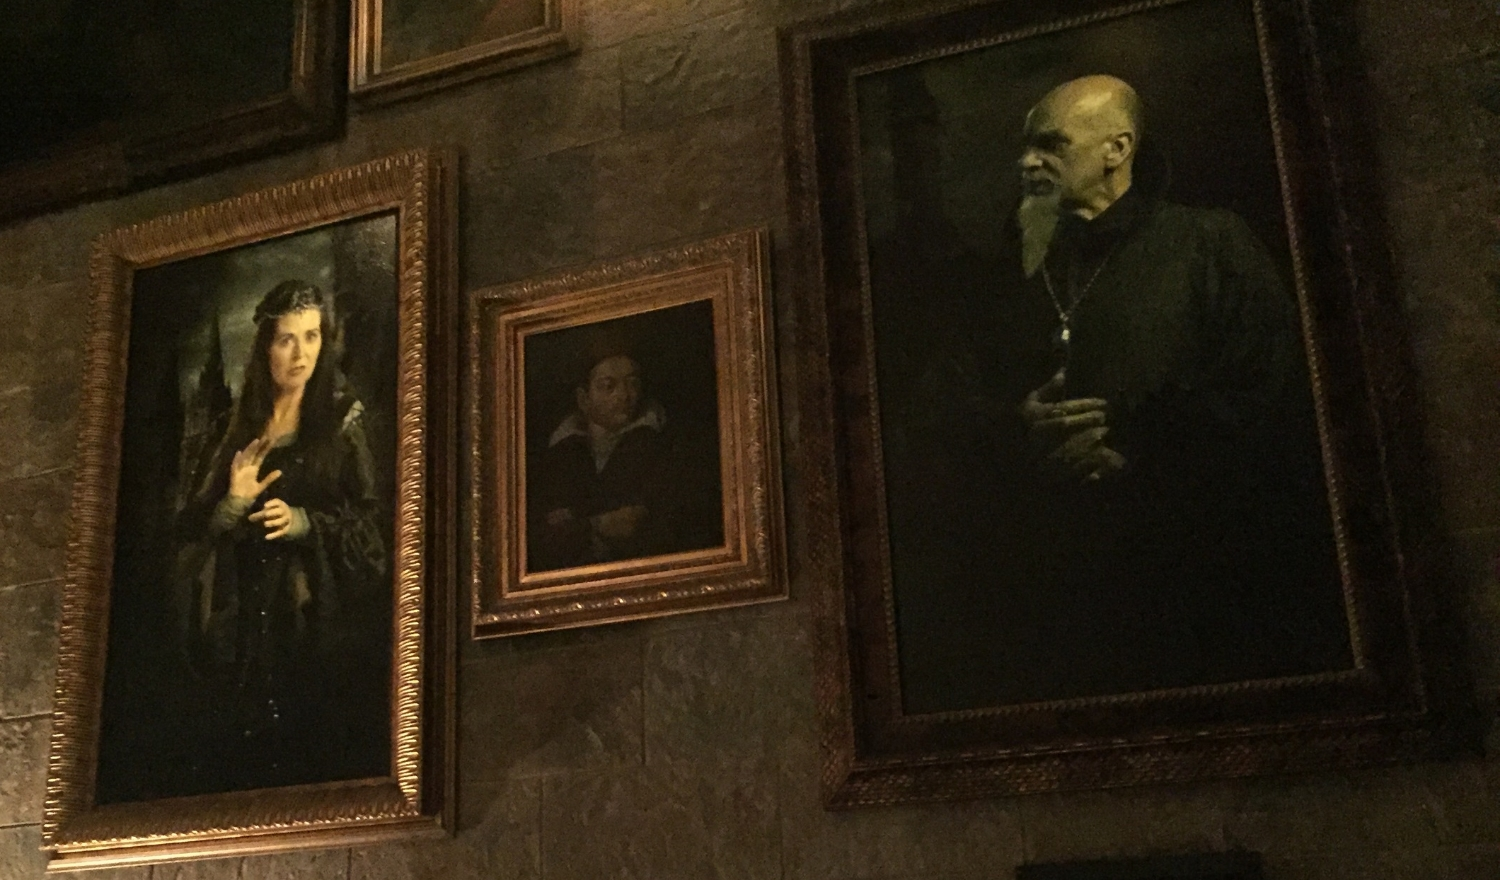 Many of the Portraits Move and Speak in the Forbidden Journey Queue